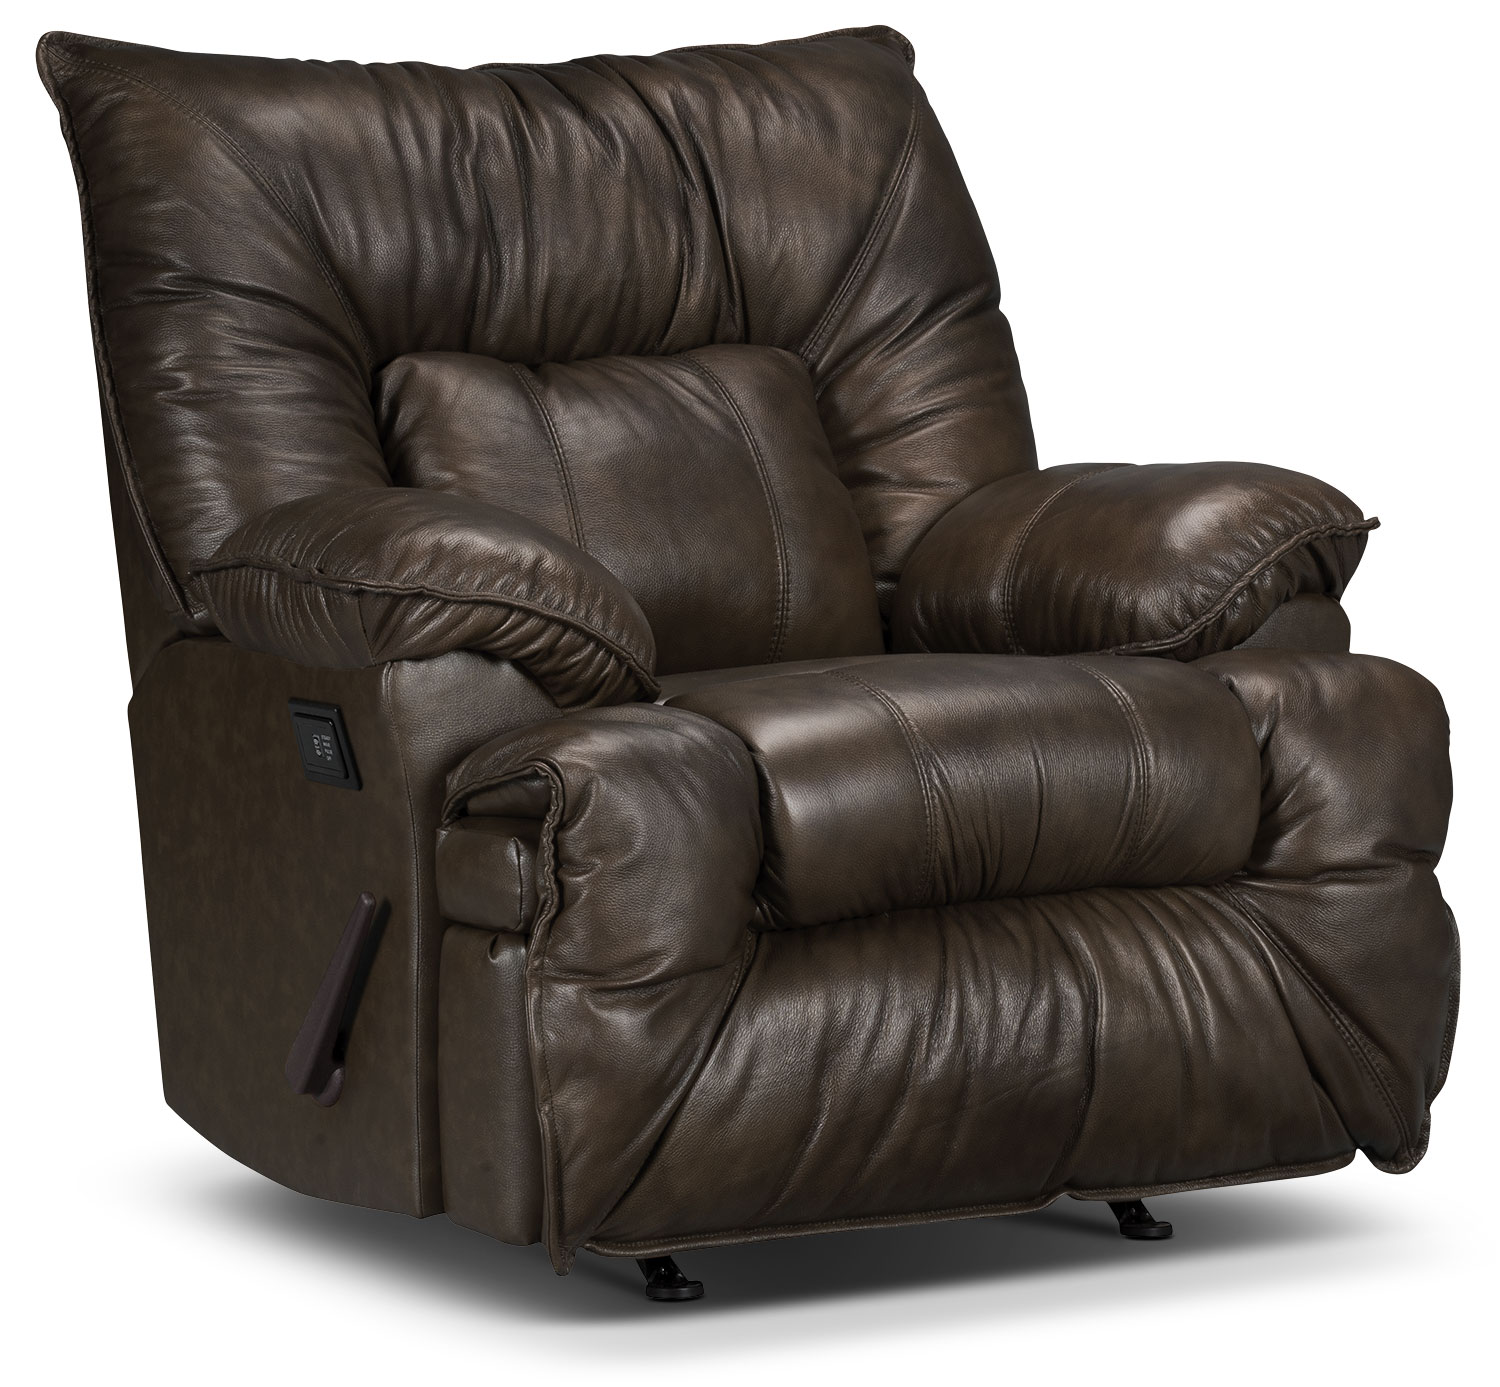 Living Room Furniture - Designed2B Recliner 7726 Leather-Look Fabric Massage Chair - Chocolate